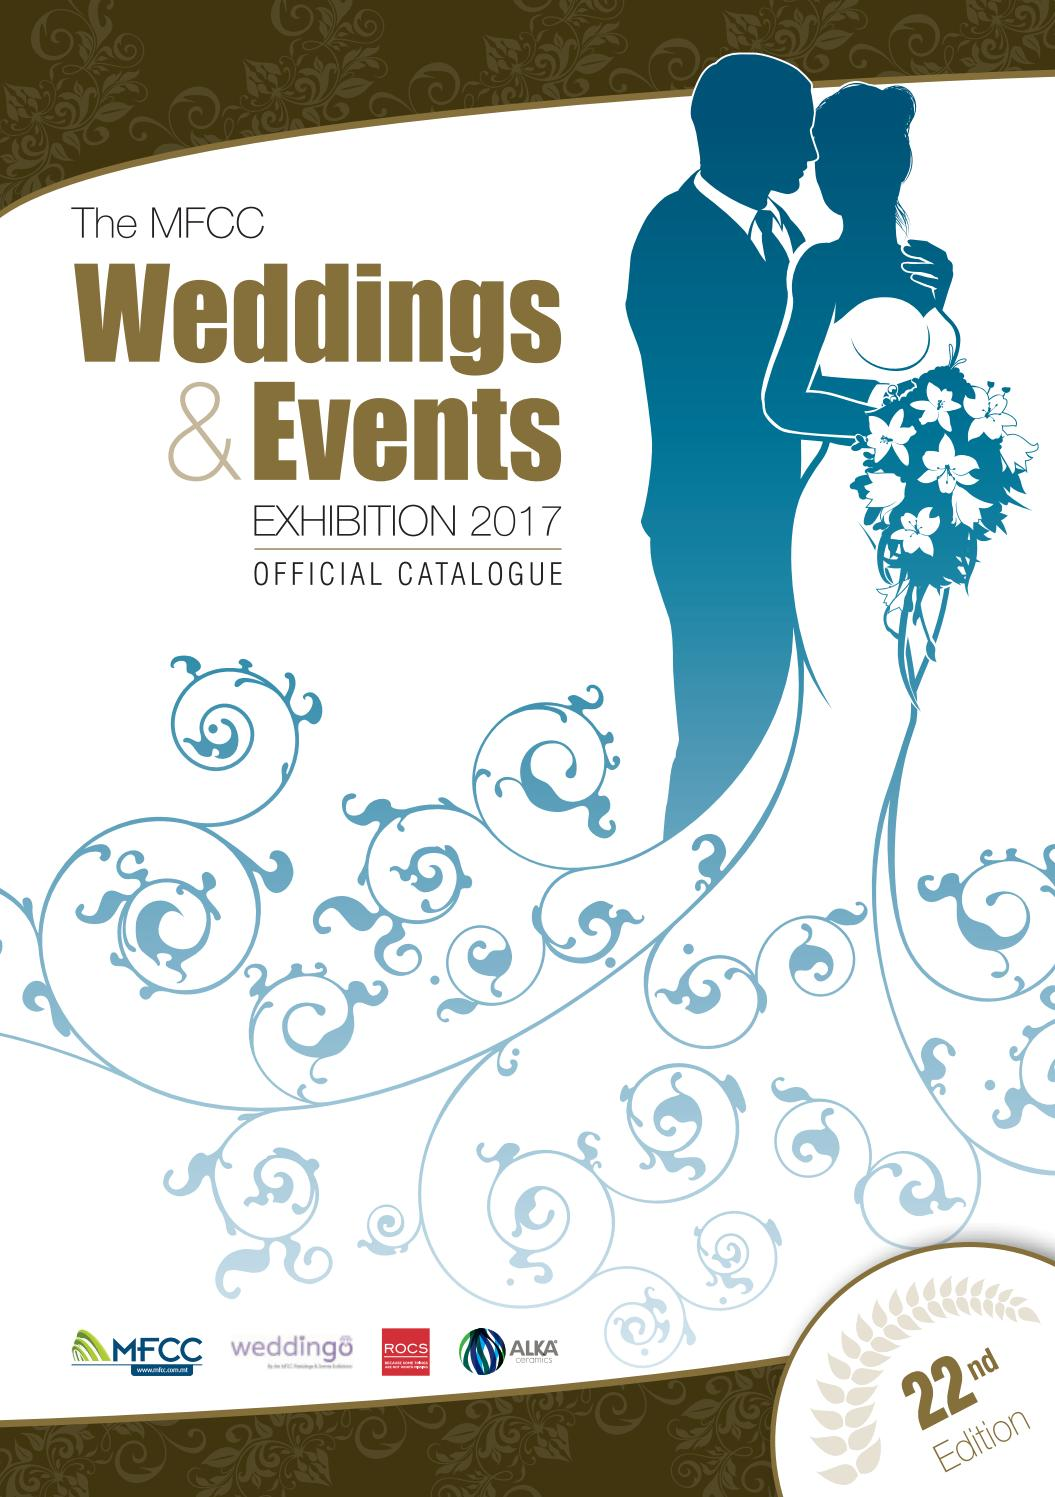 Interni Attaguile Grammichele Ct the mfcc weddings & events exhibition 2017 catalogue by joan